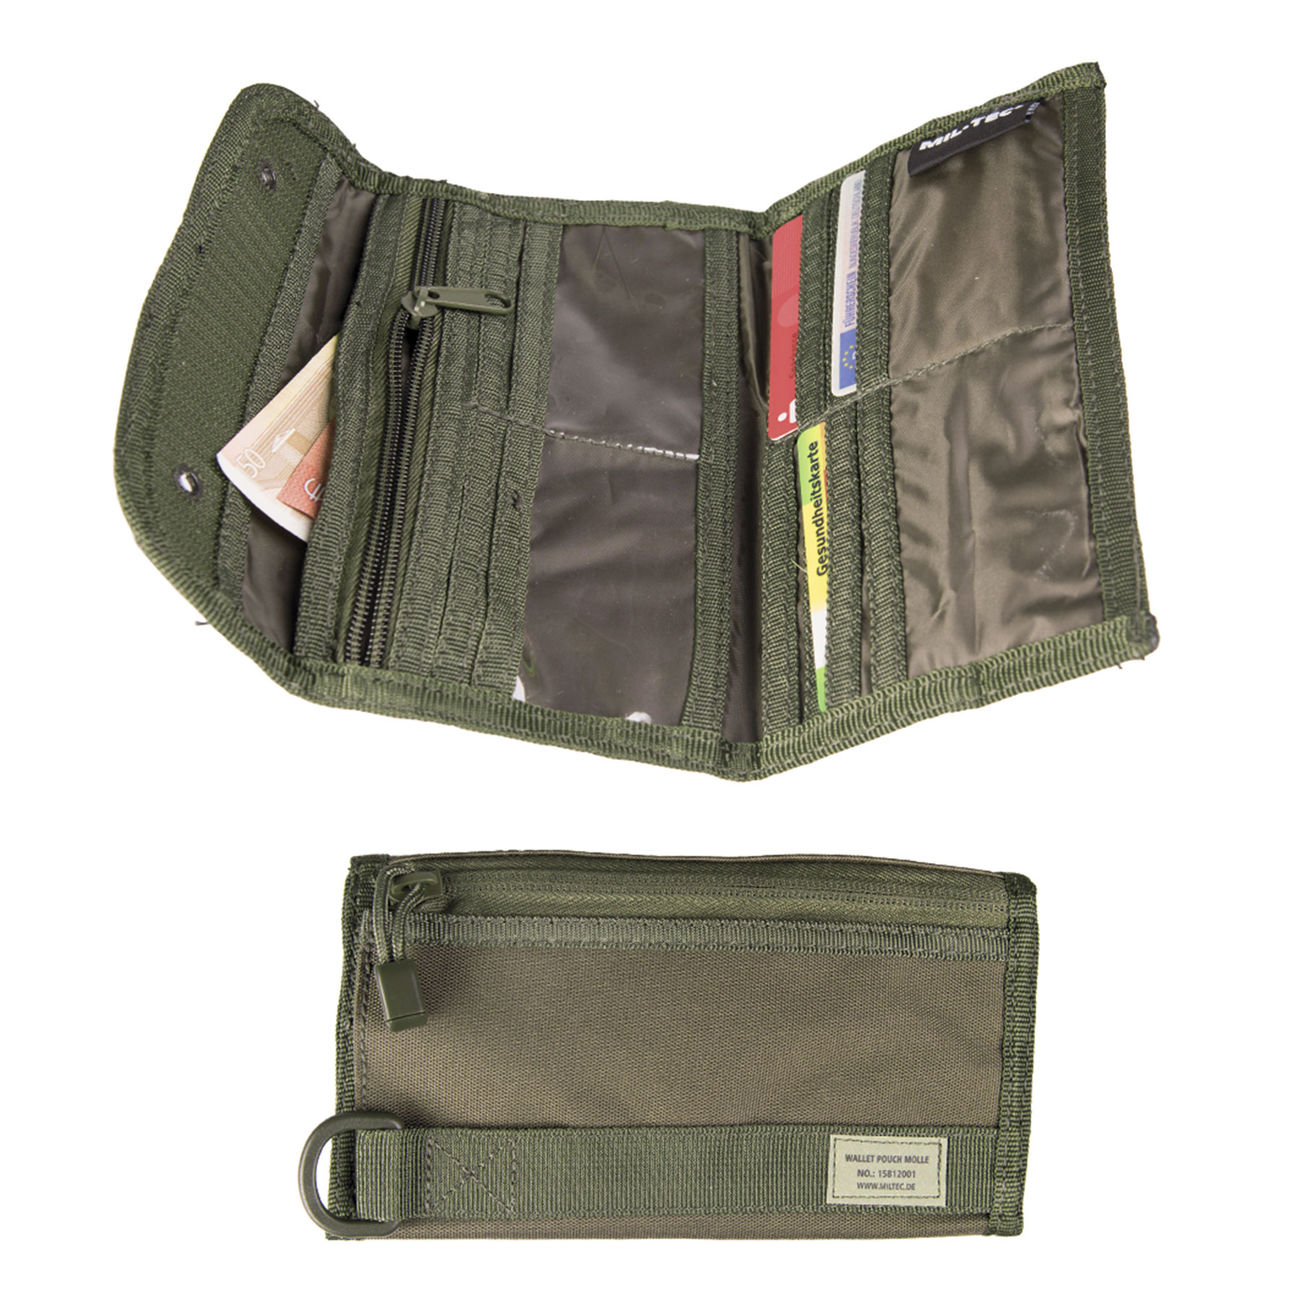 Mil-Tec Brieftasche Wallet Pouch Molle Oliv 1